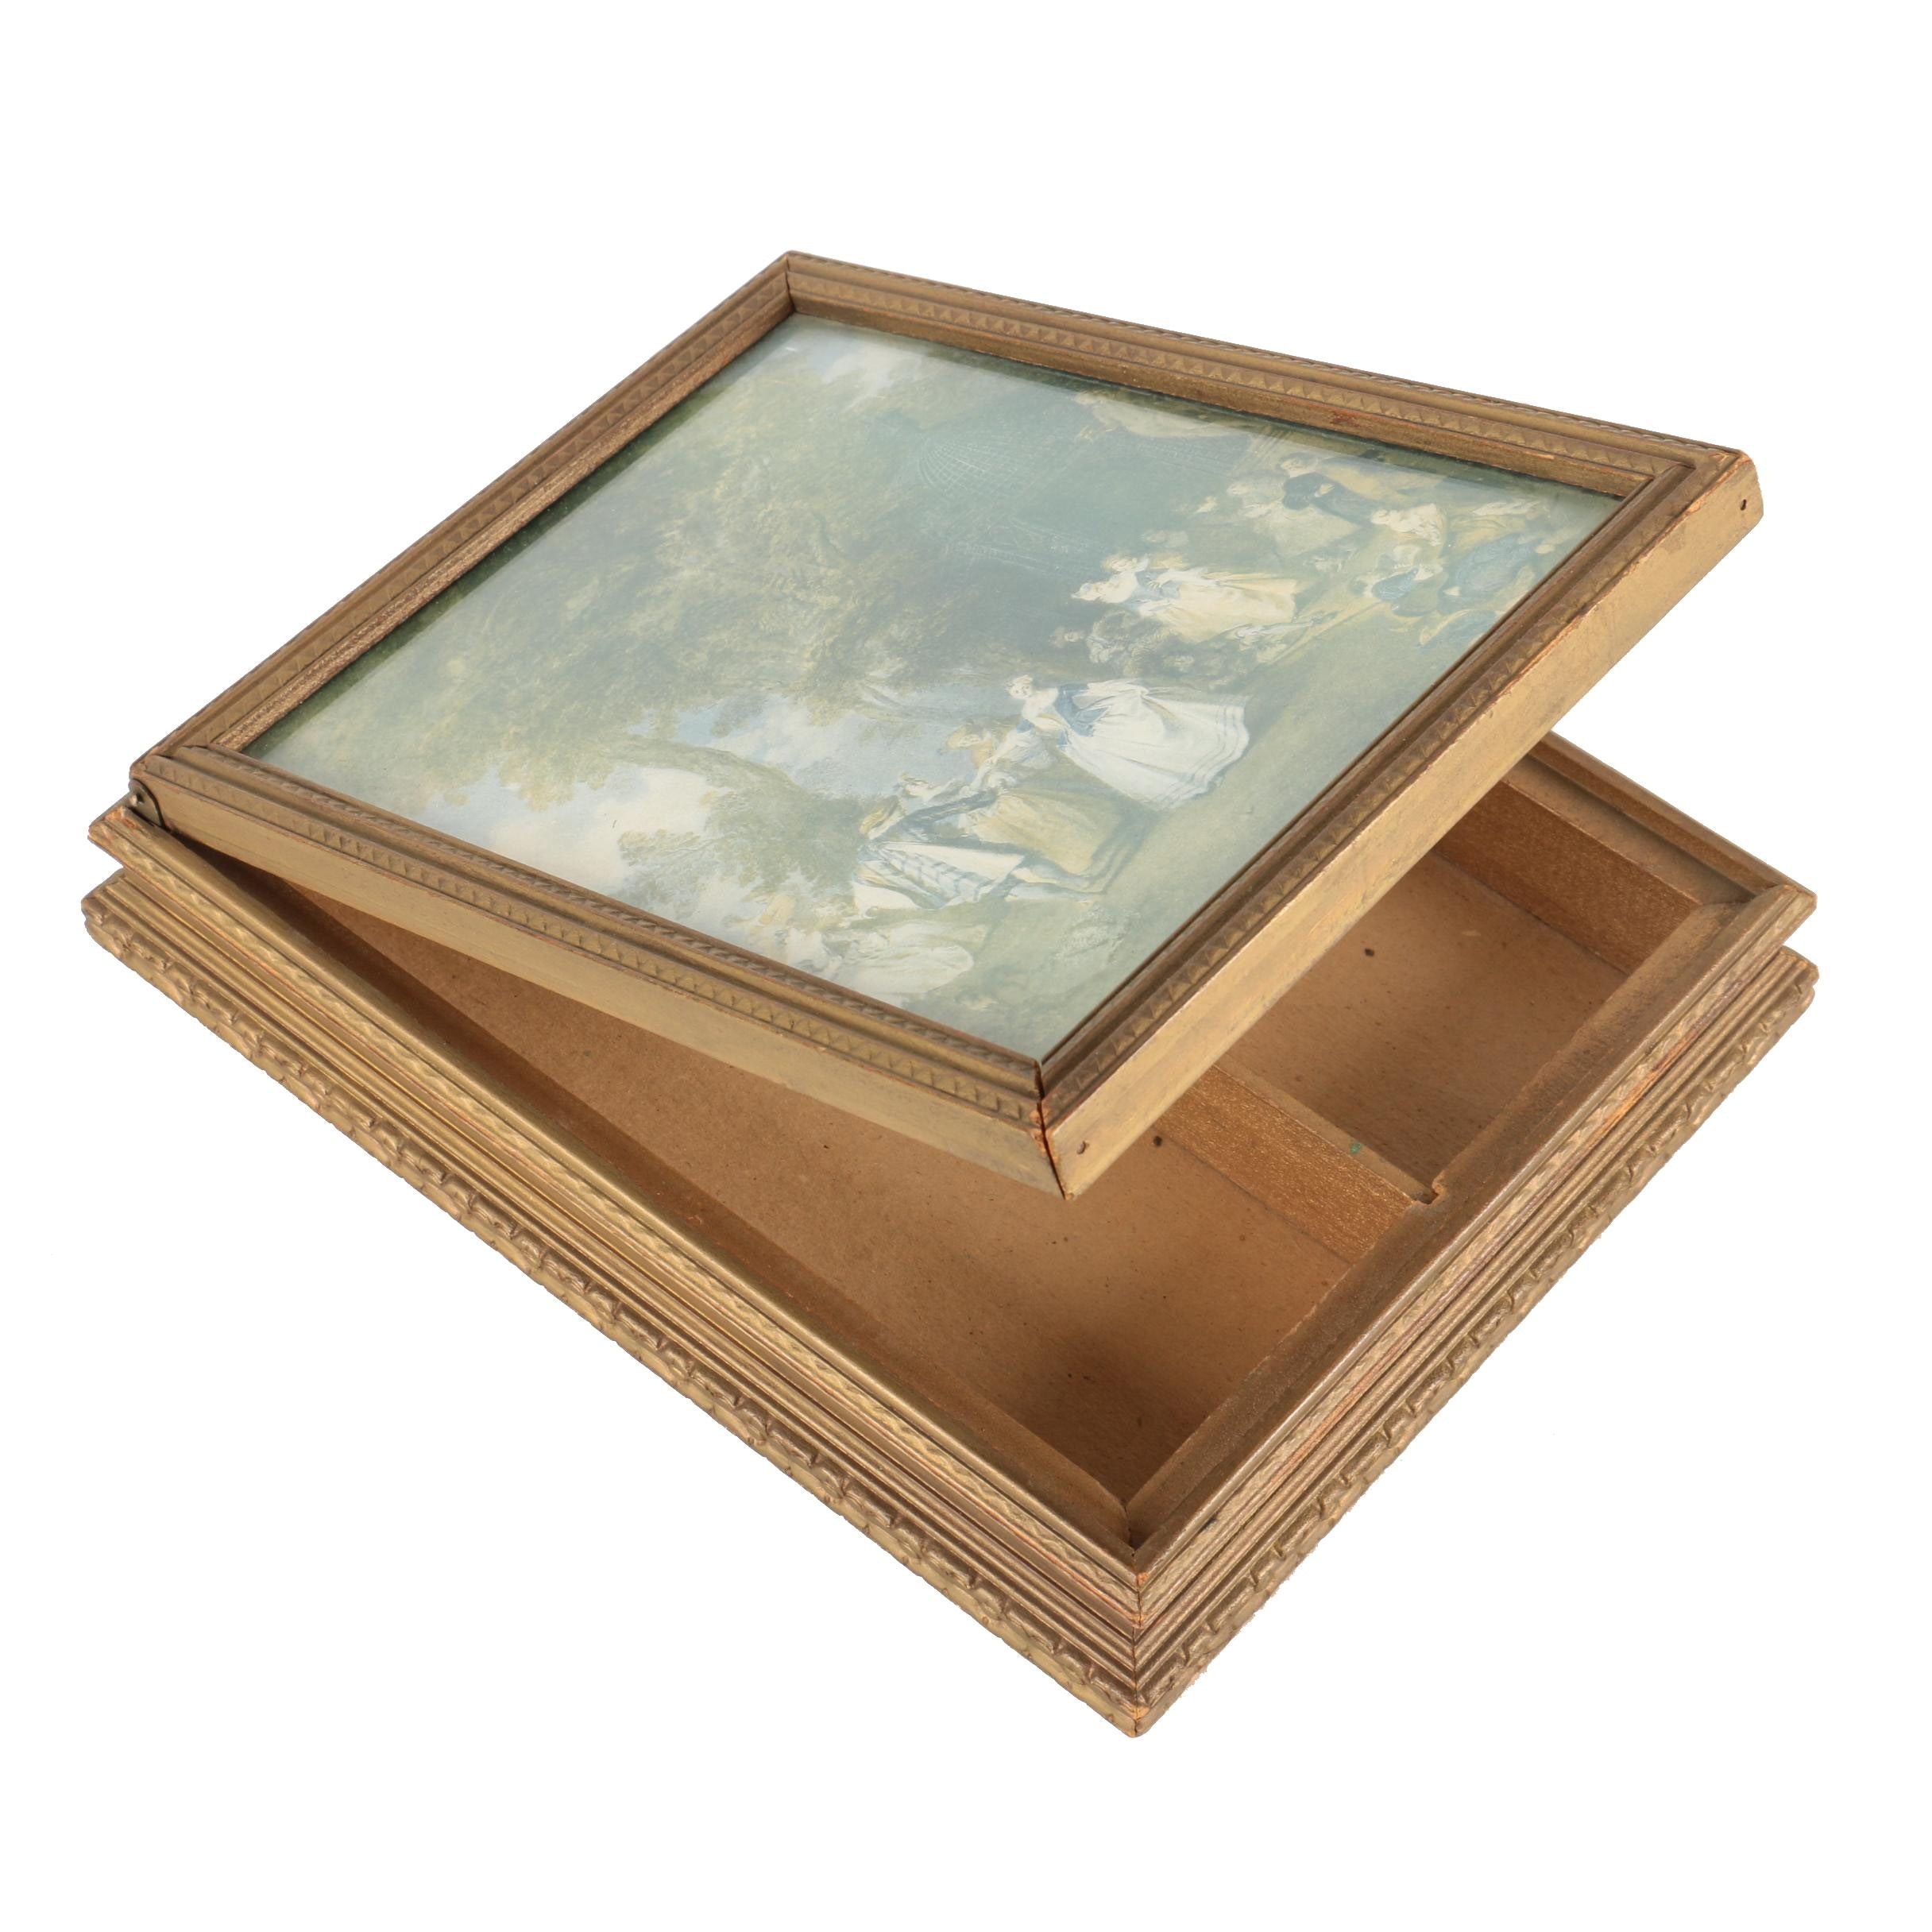 Reproduction Print on Jewelry Box with Mirror